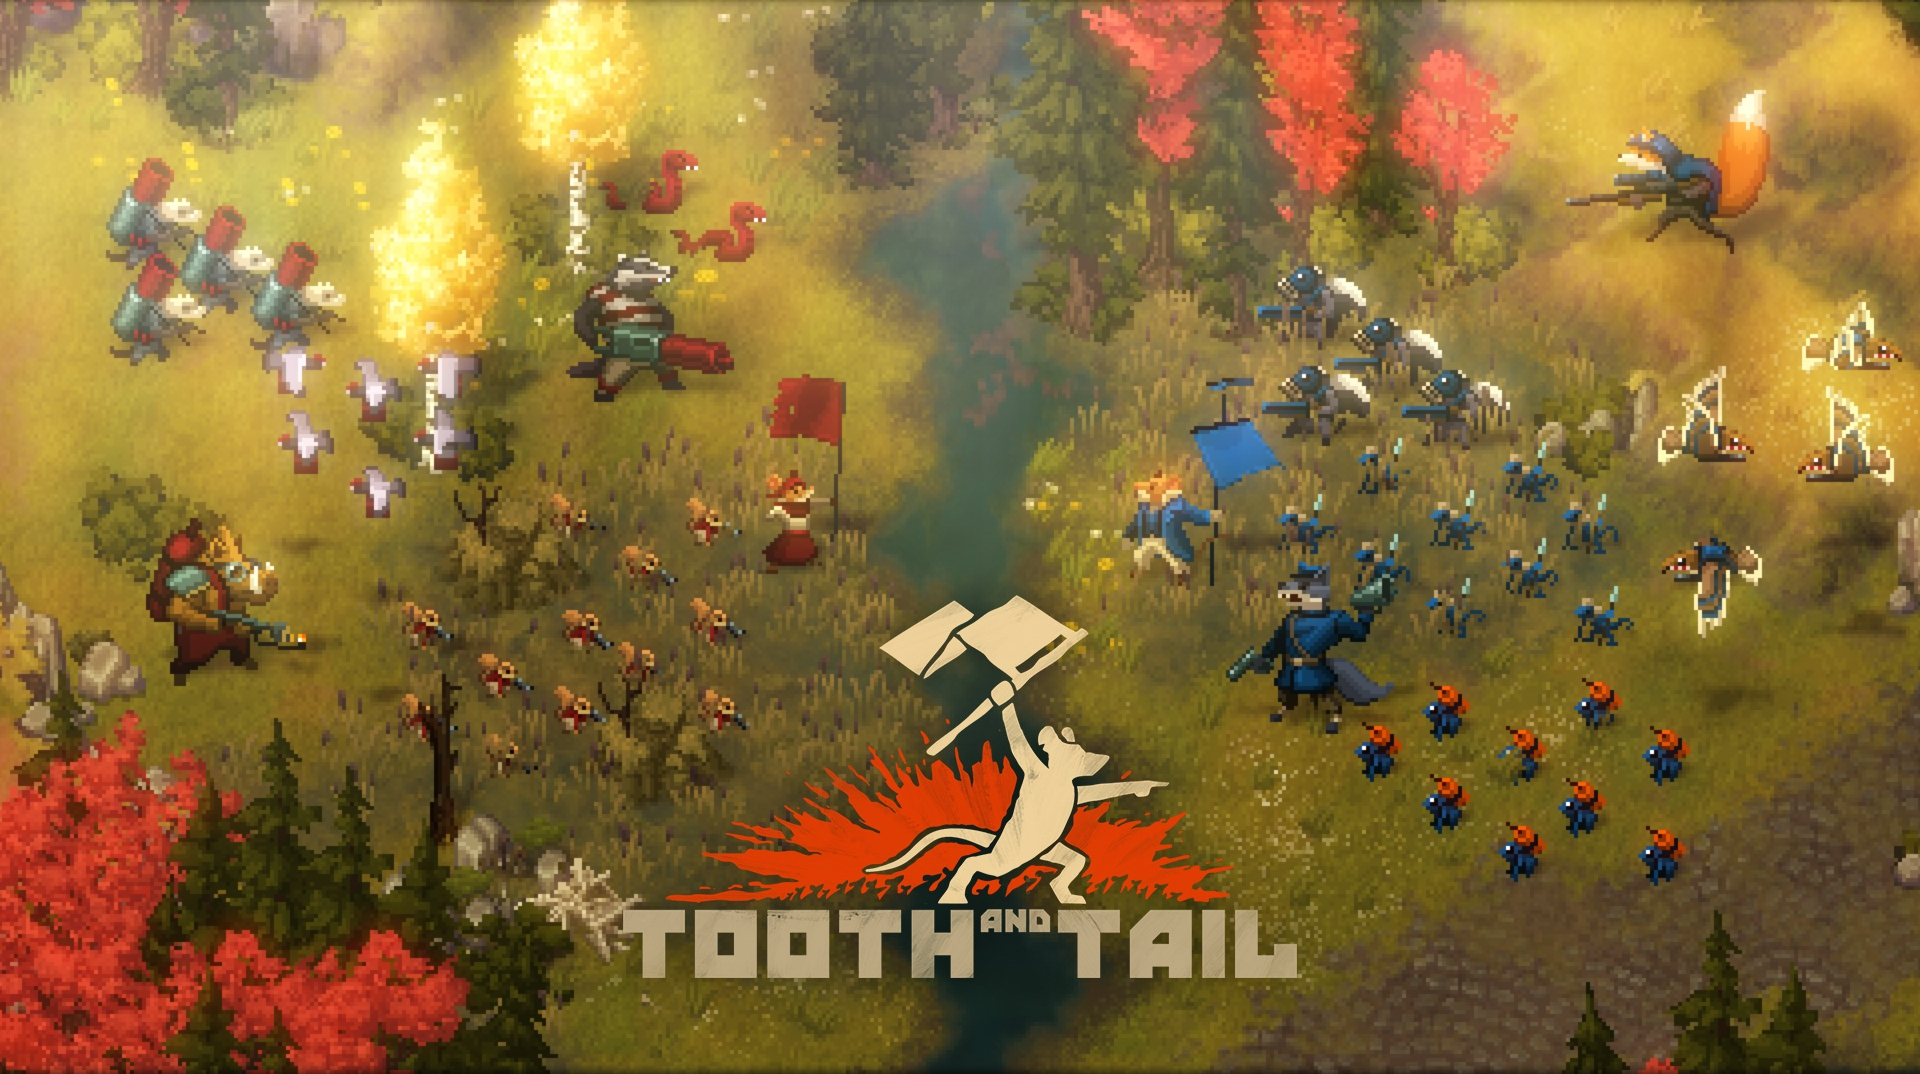 4 Games That Comes With Ps4 : Tooth and tail the furry rts set to revolutionary